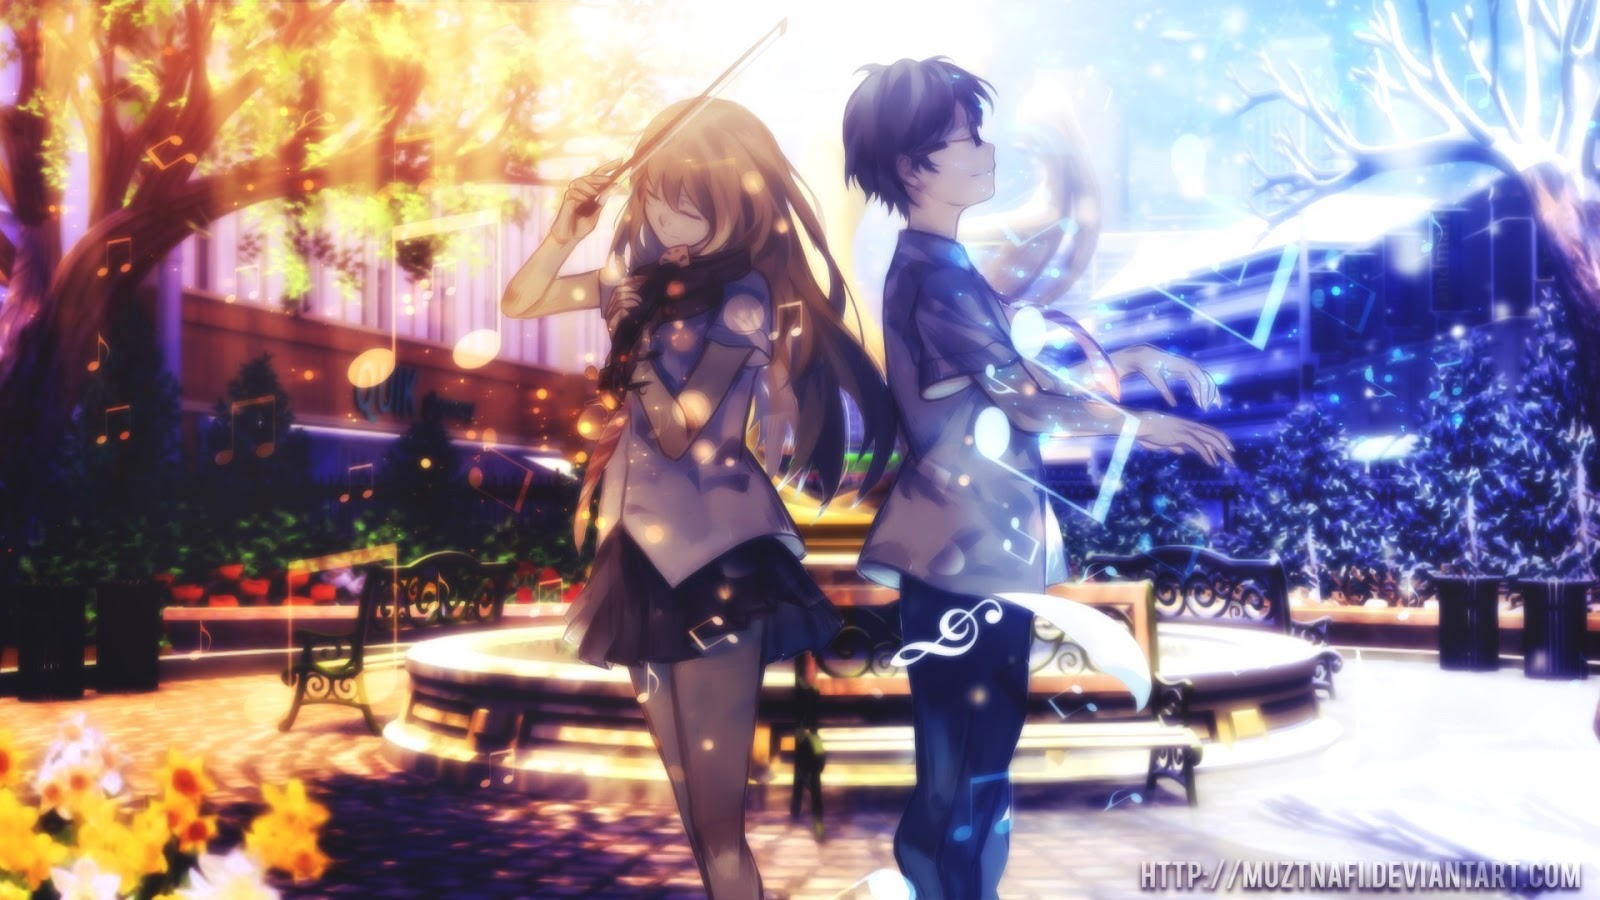 Download OST Opening Ending Insert Song Acoustic Version Anime Shigatsu Wa Kimi No Uso Full